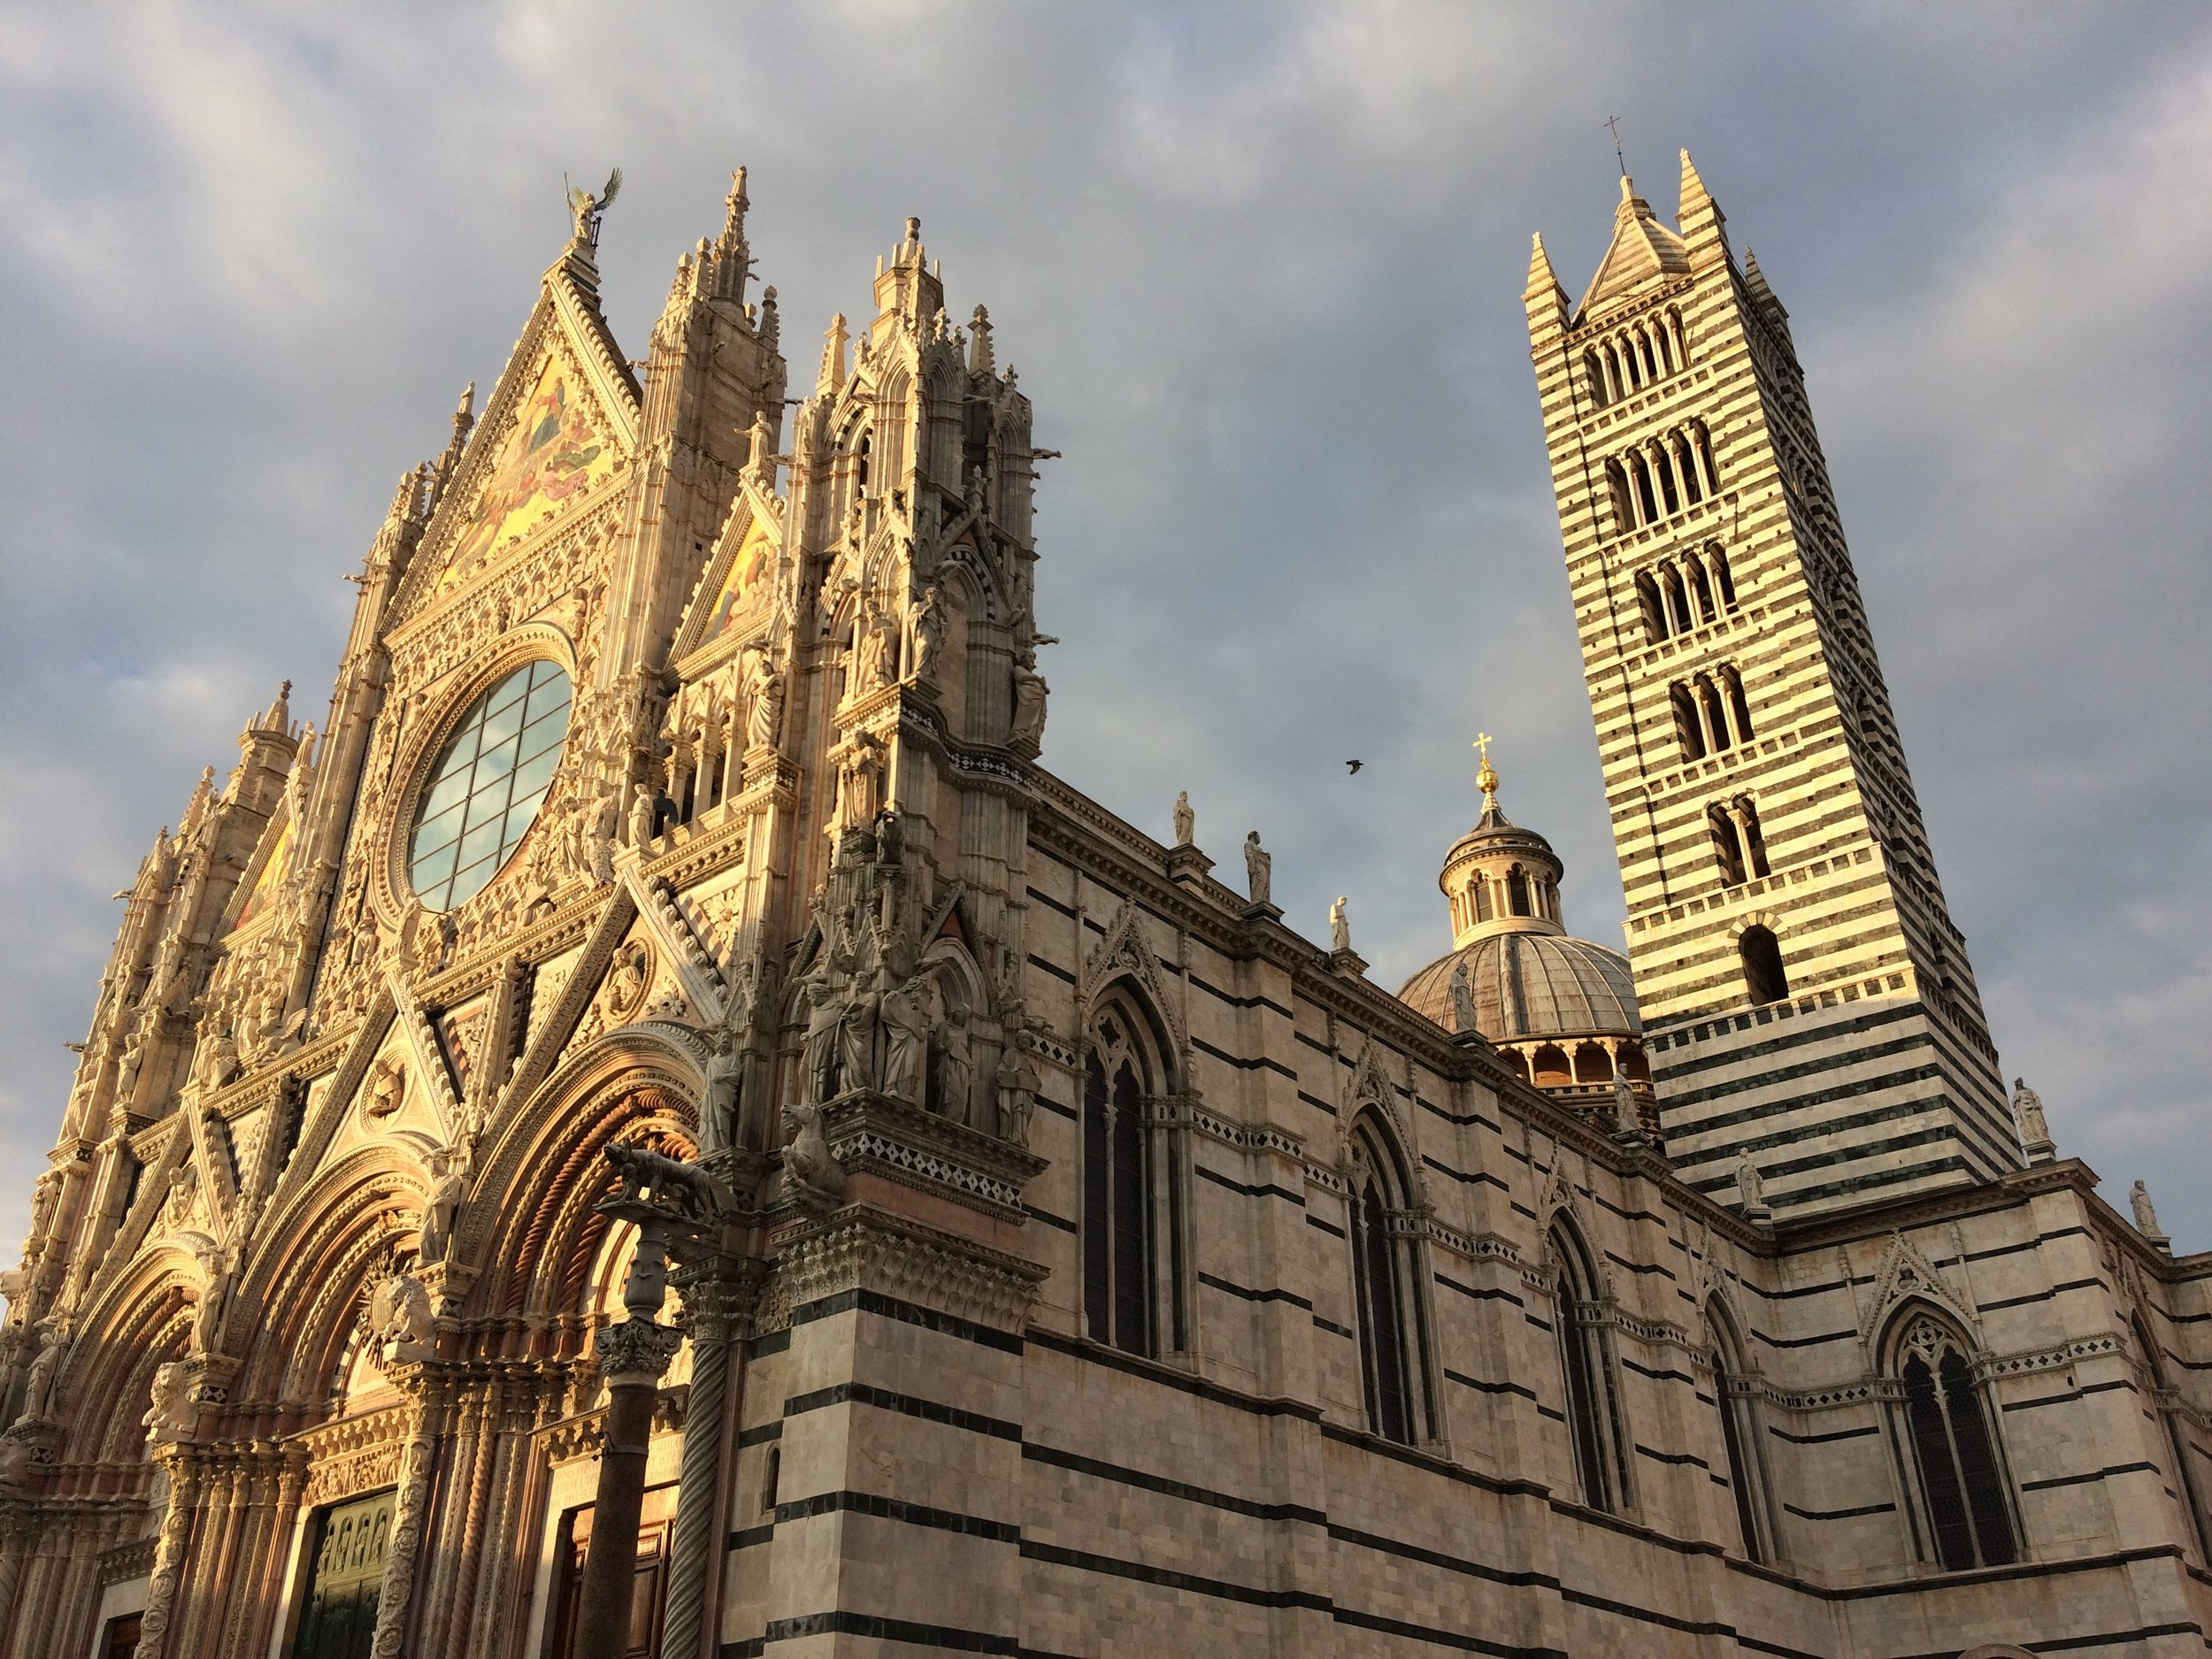 Siena Duomo - photo by Paul Hart, October 2018